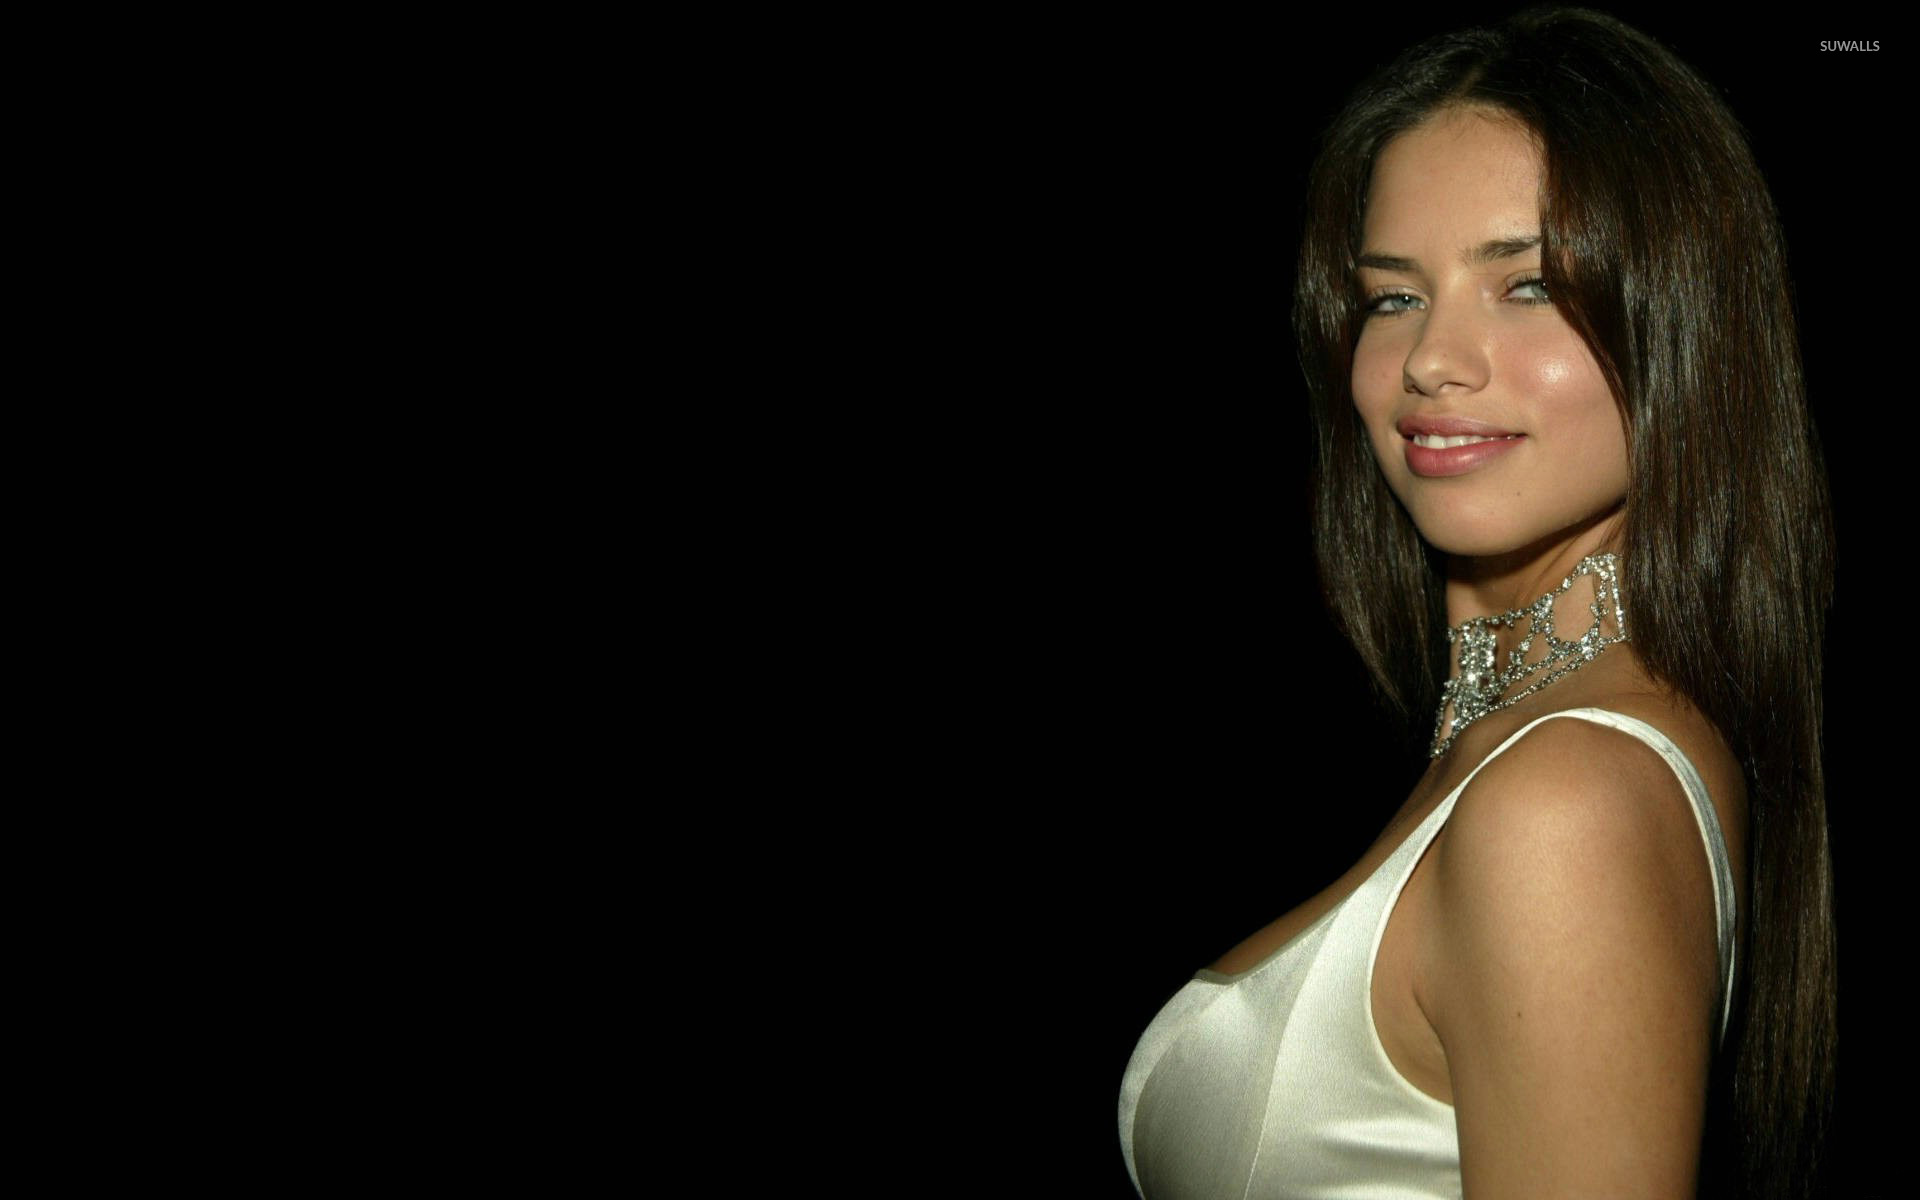 Adriana lima 37 wallpaper girl wallpapers 4998 adriana lima 37 wallpaper voltagebd Images